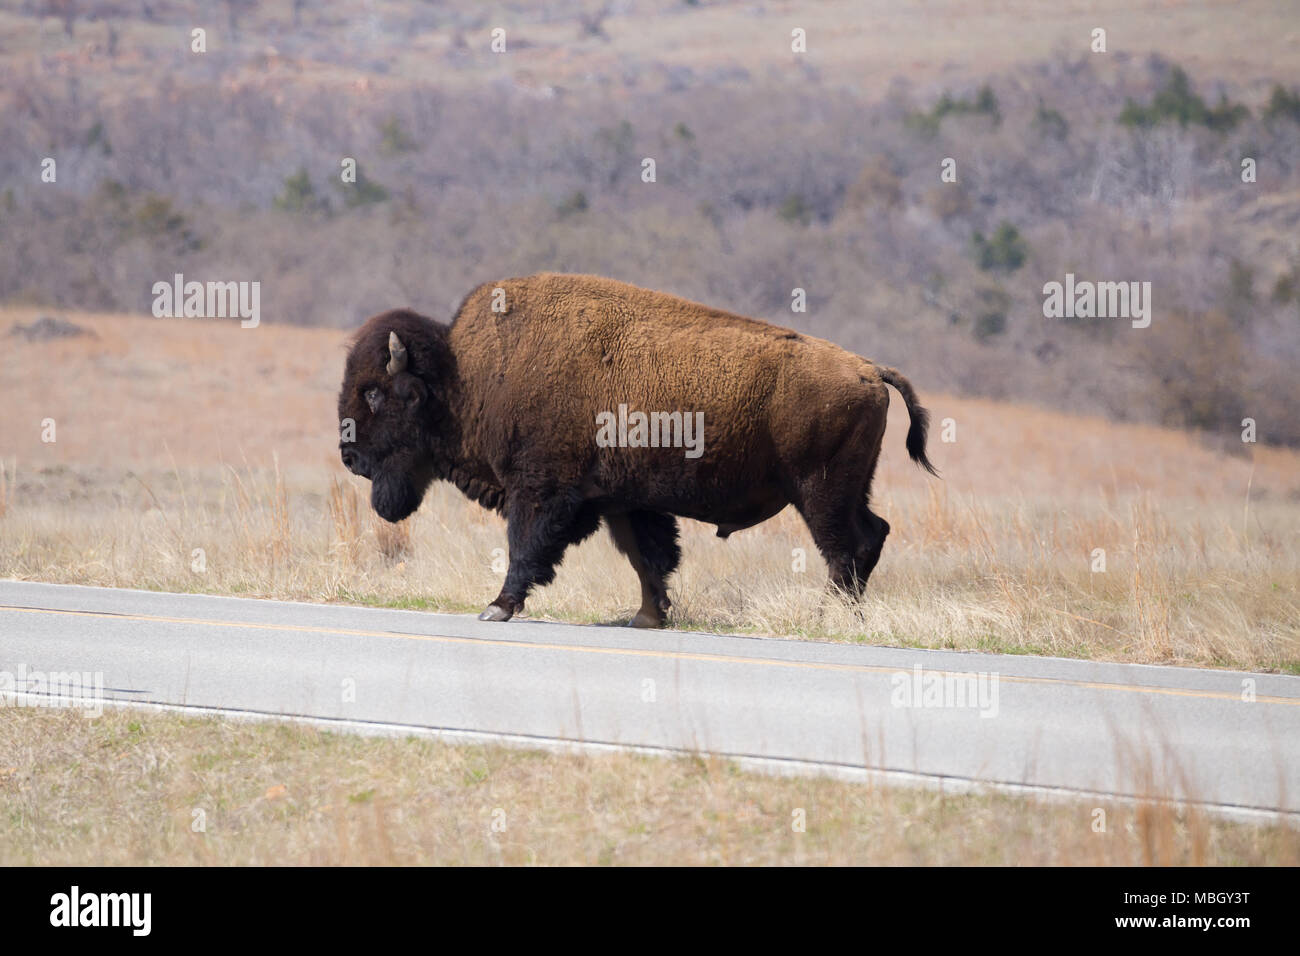 A large buffalo is crossing the road in Witchita Mountains Wildlife Reserve. Stock Photo